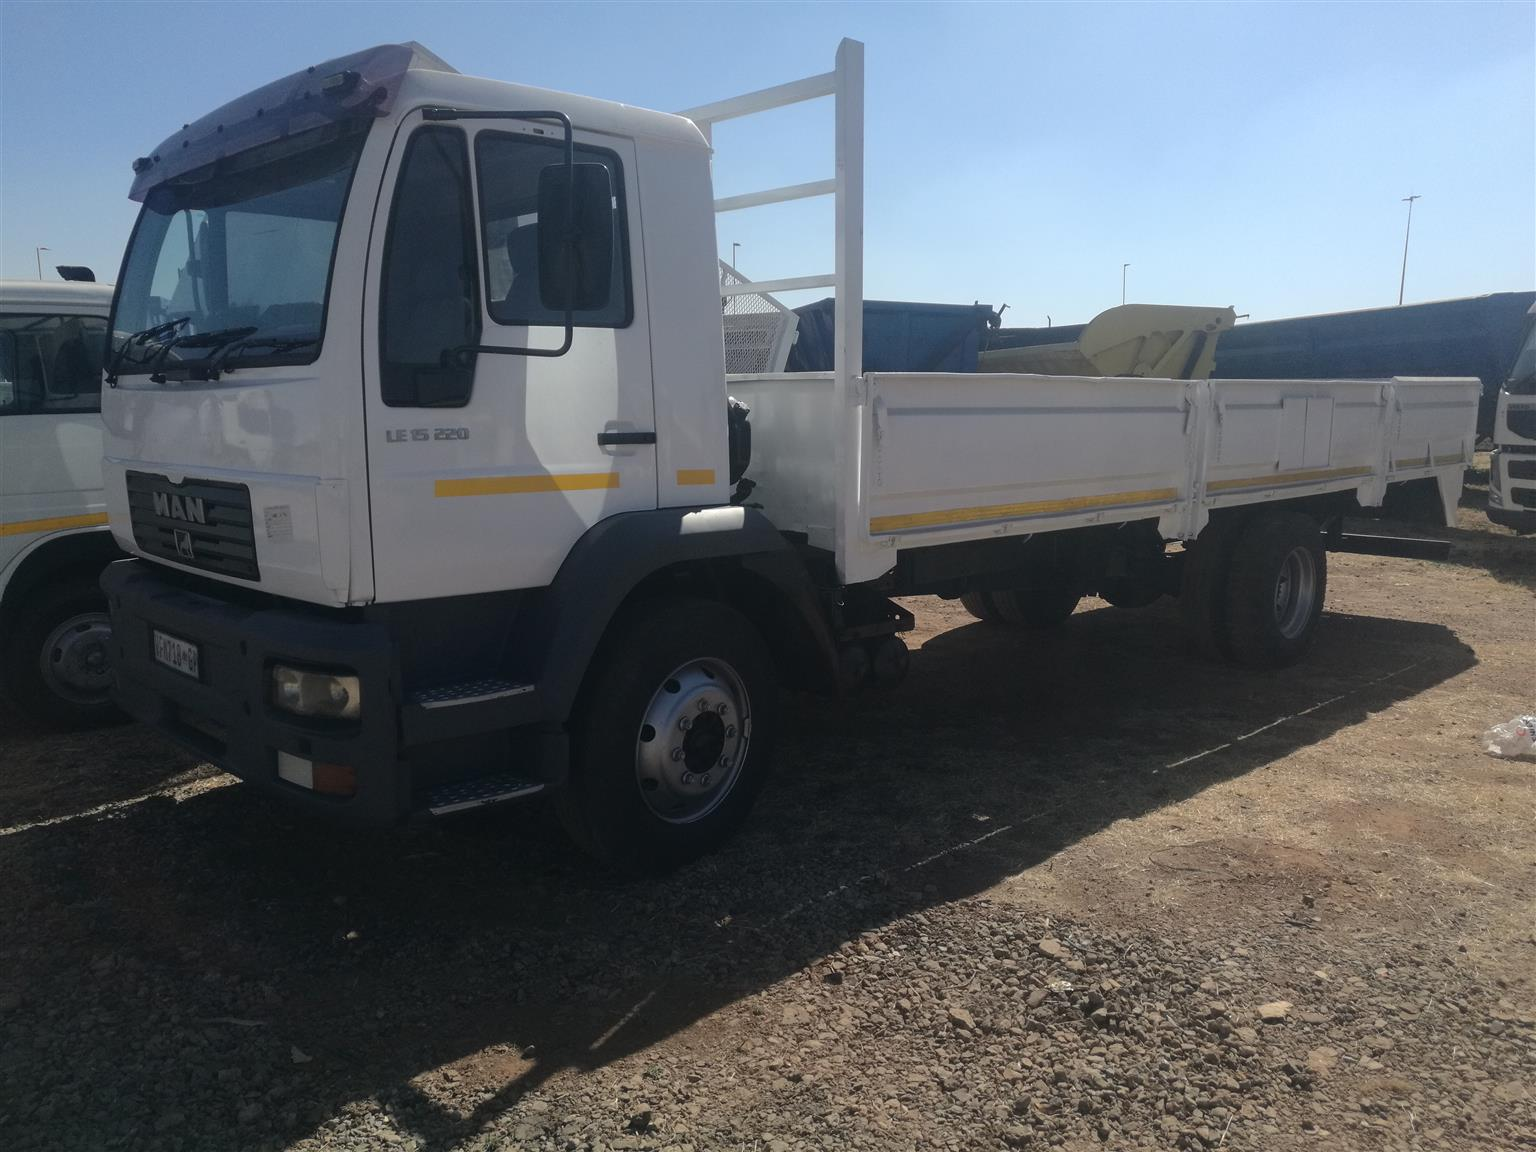 MAN DROPSIDE LE 15 220 FOR SALE. POSTED BY MUHAMMAD